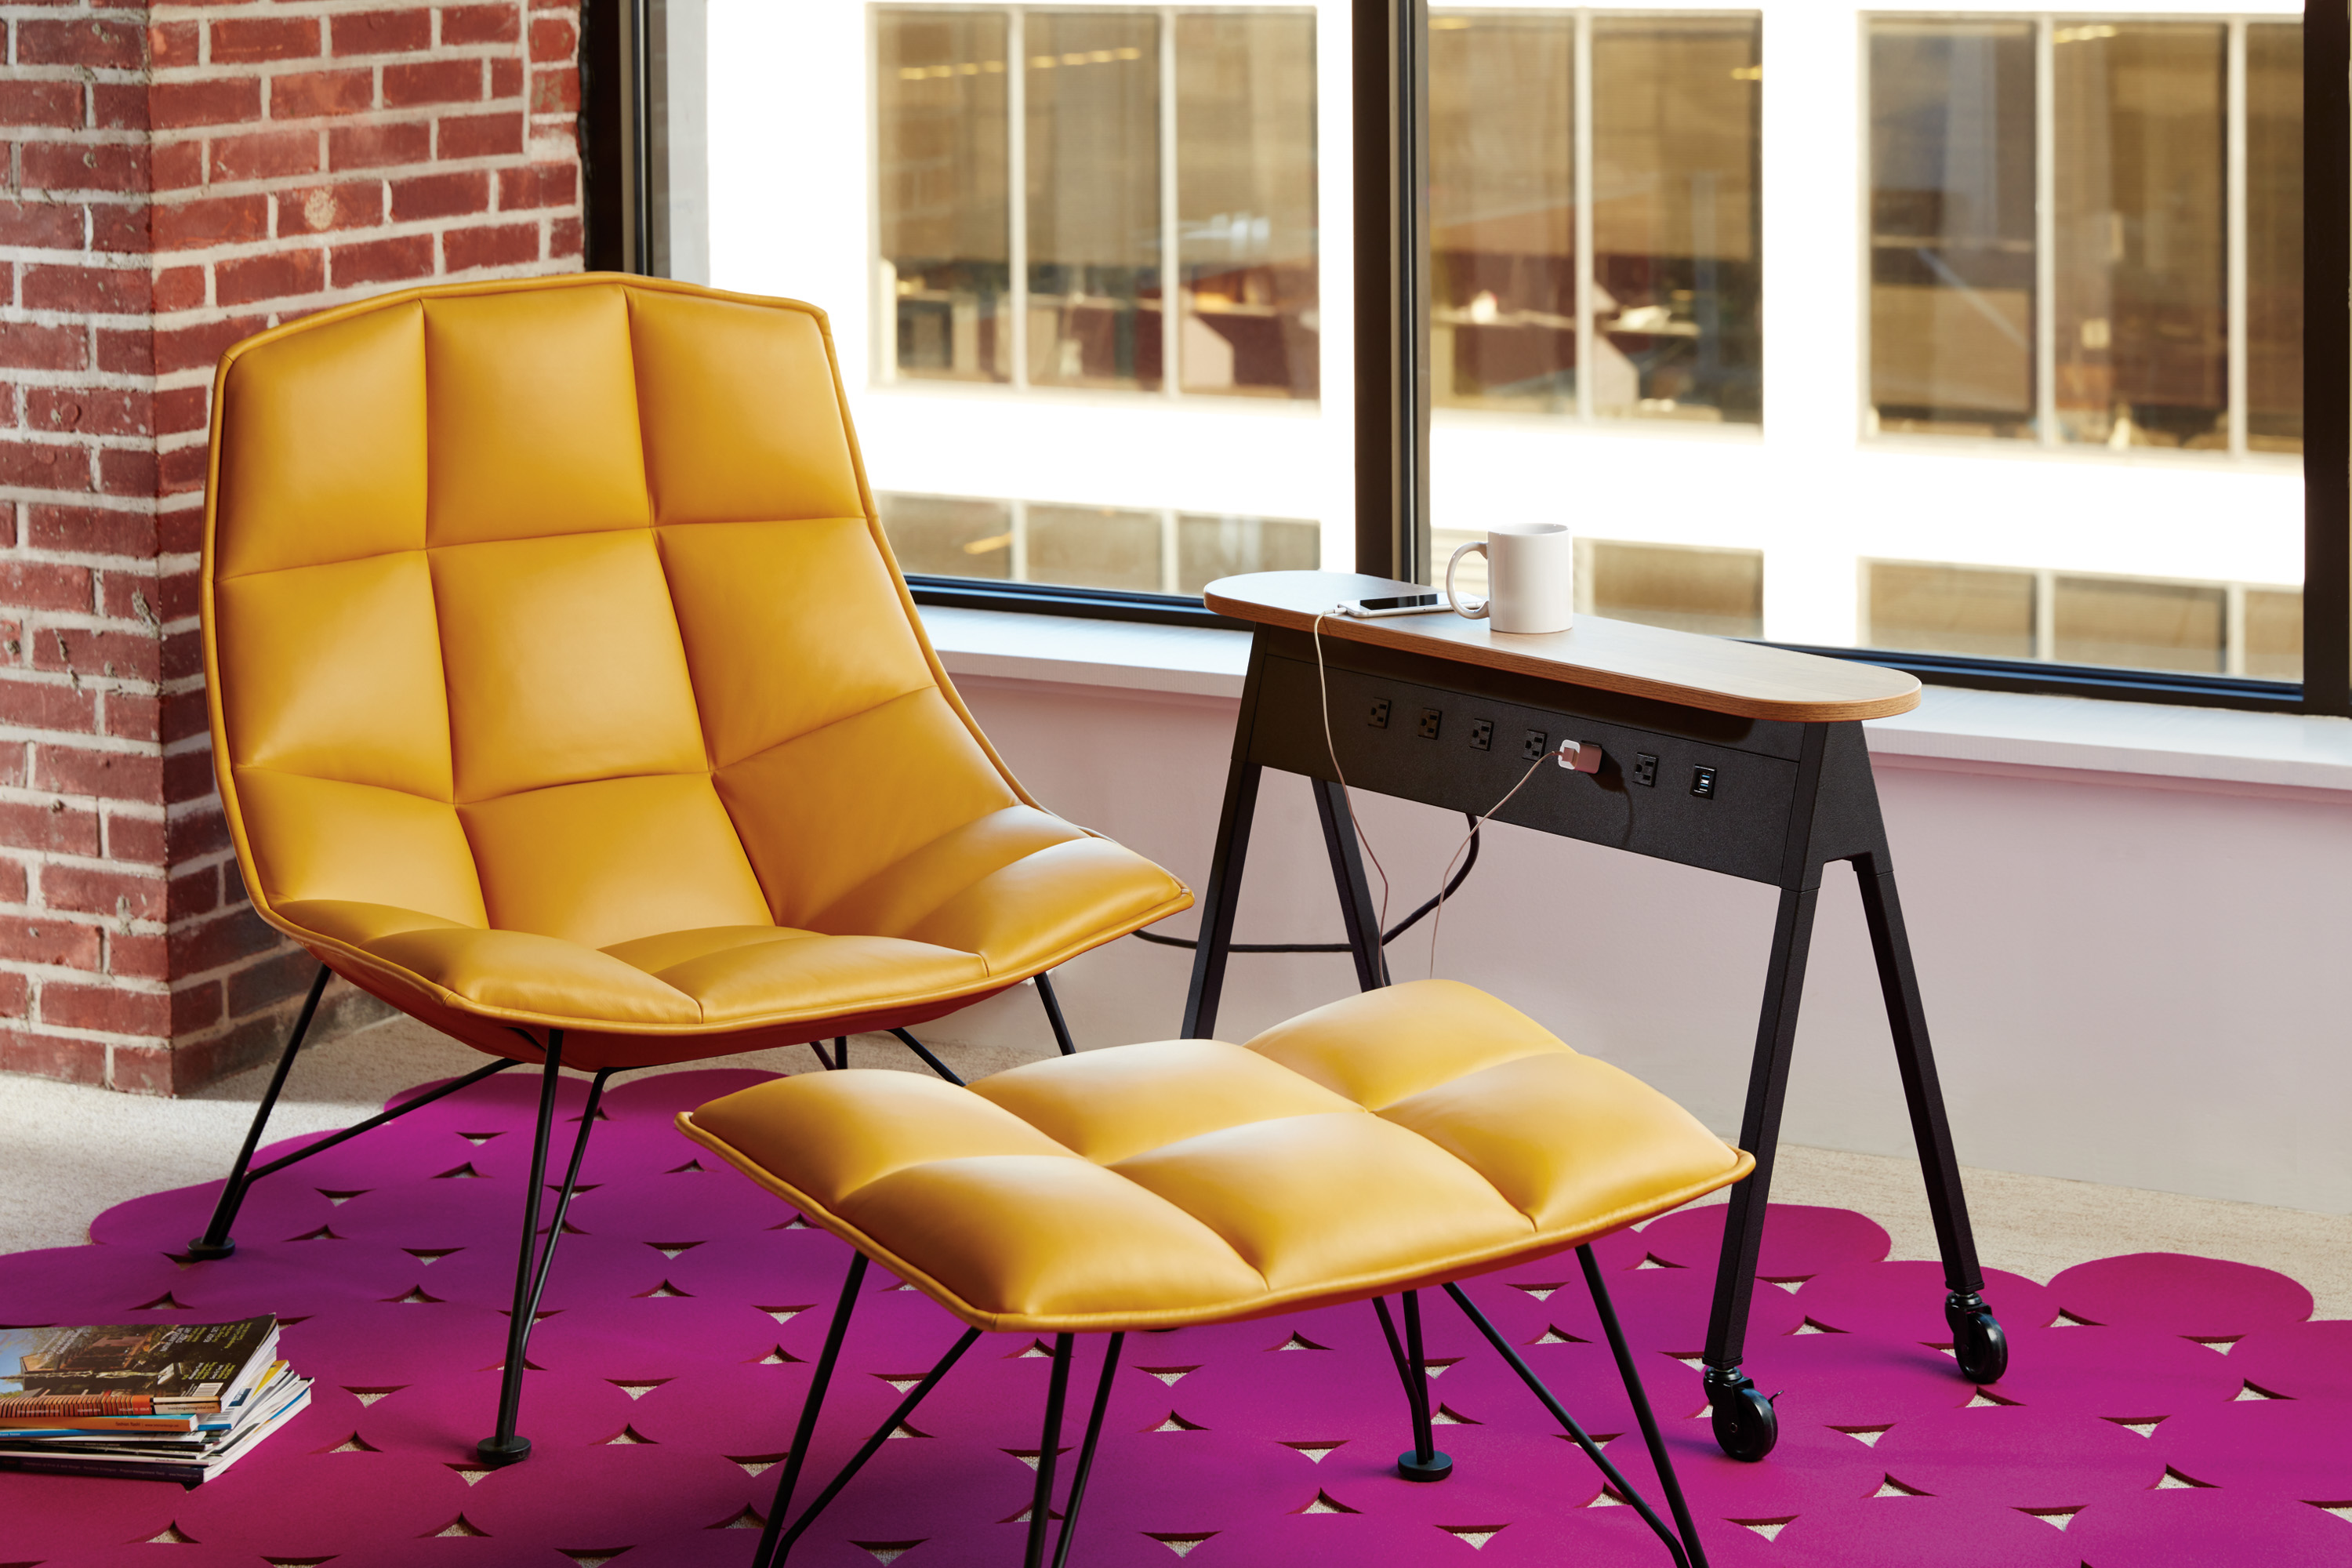 Set of armchairs and rocking chairs just out from beneath the shelter - Jehs Laub Lounge Chair